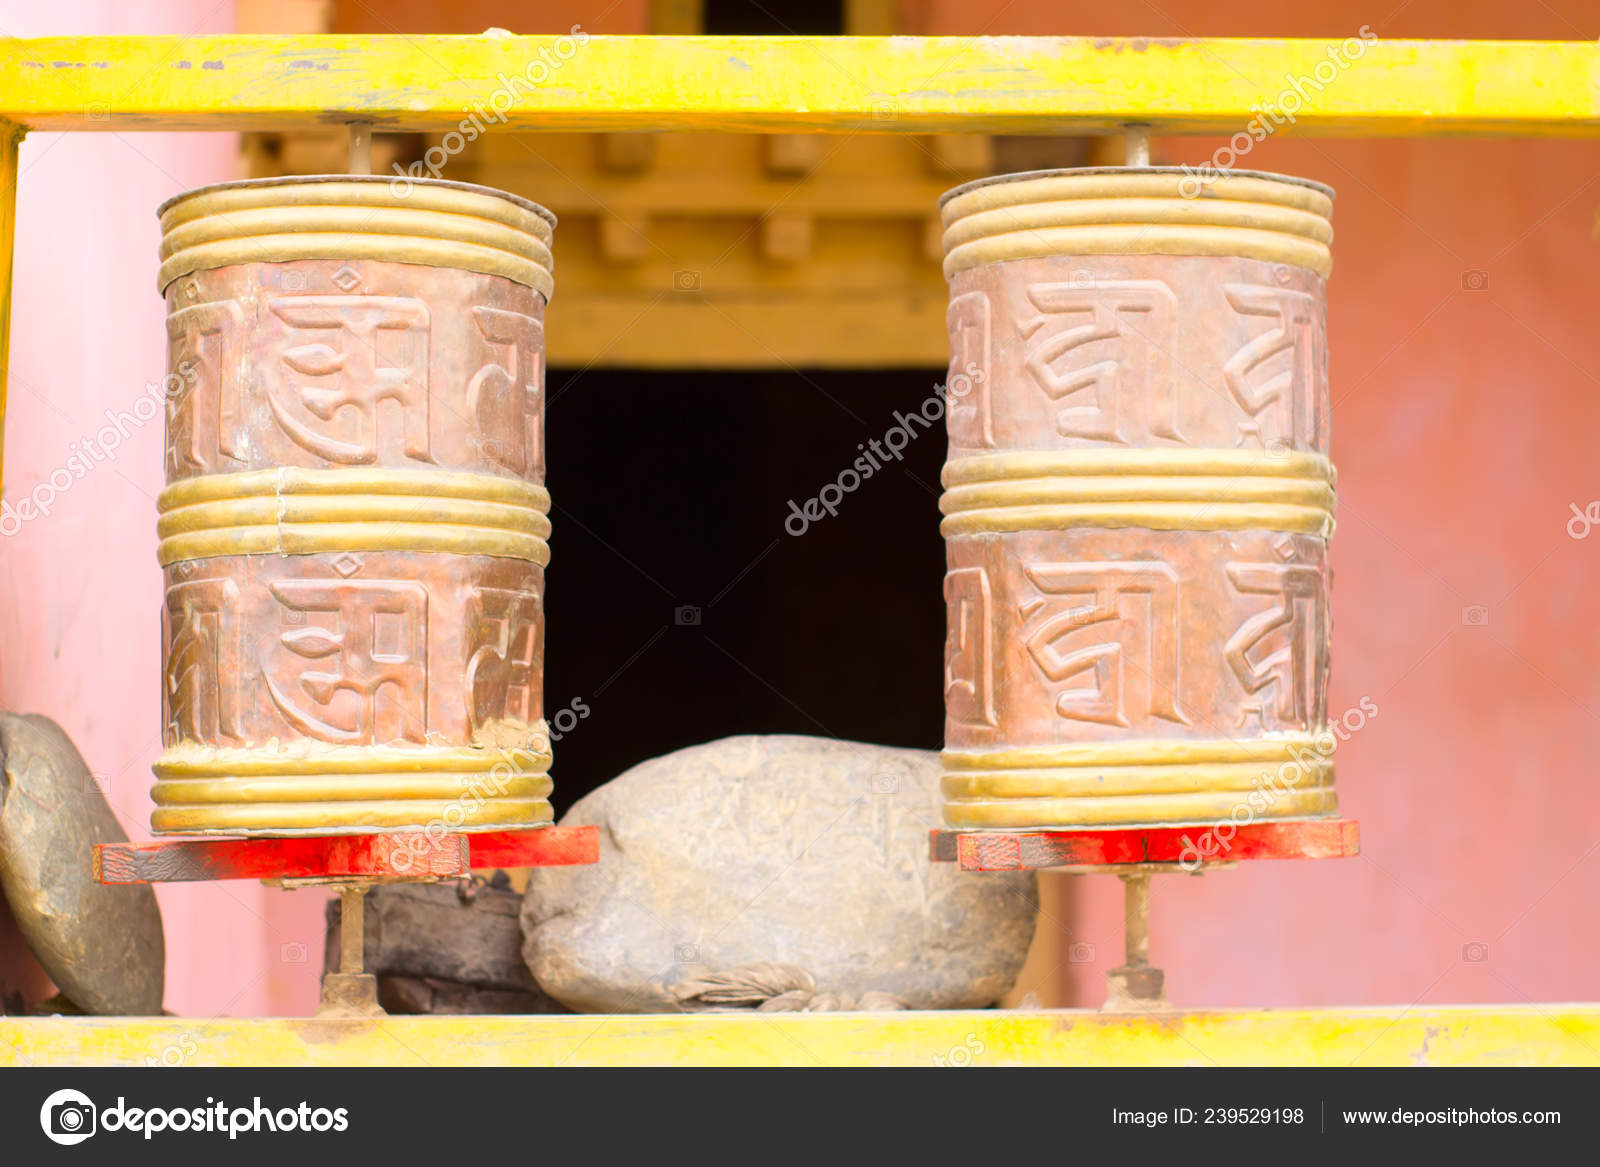 Cylinders with Tibetan symbols for reading mantras — Stock Photo